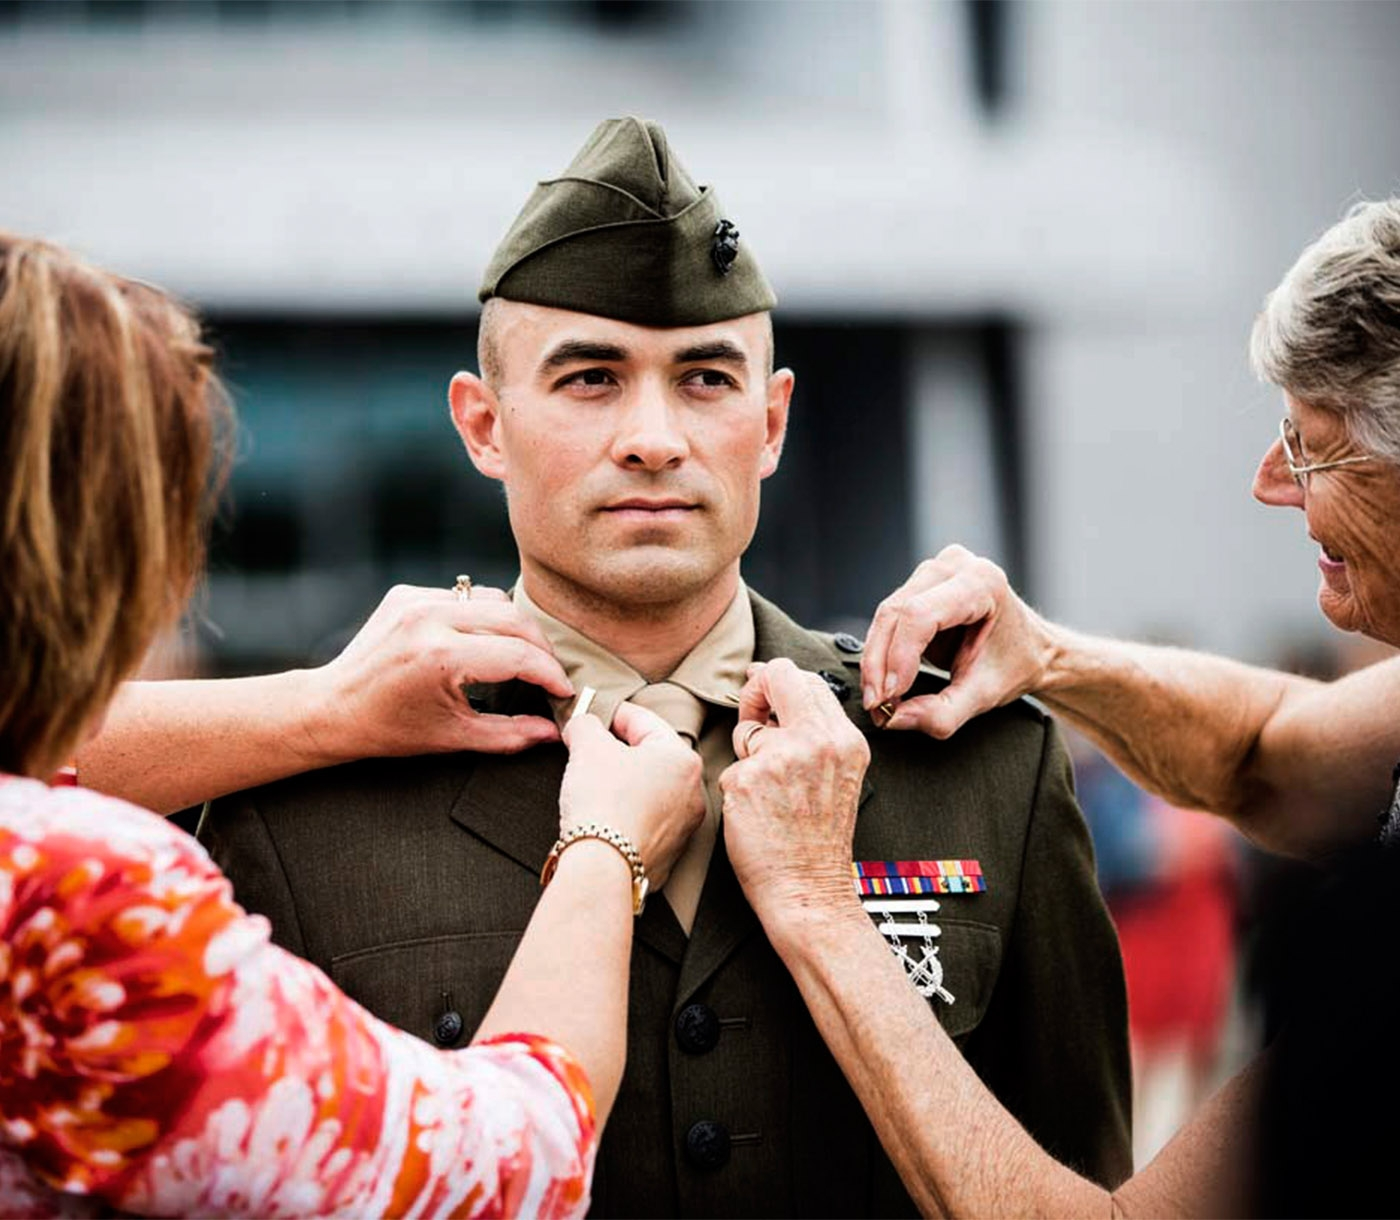 A Marine Officer is pinned by loved ones.